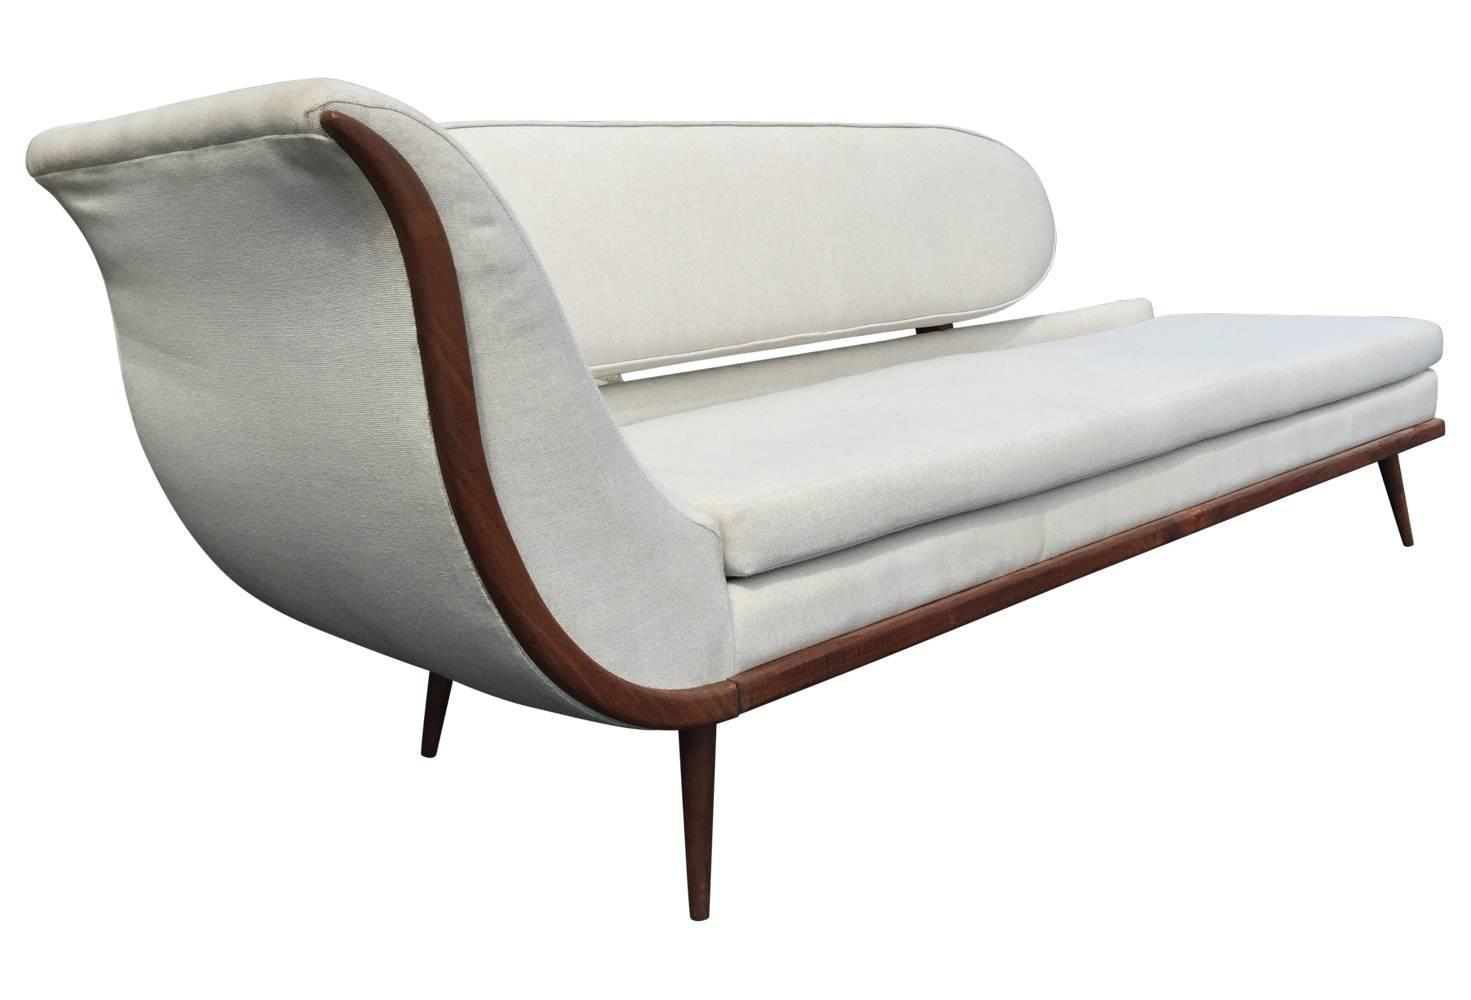 mid century style sofa canada microfiber sofas pros and cons exquisite modern settee by cimon of